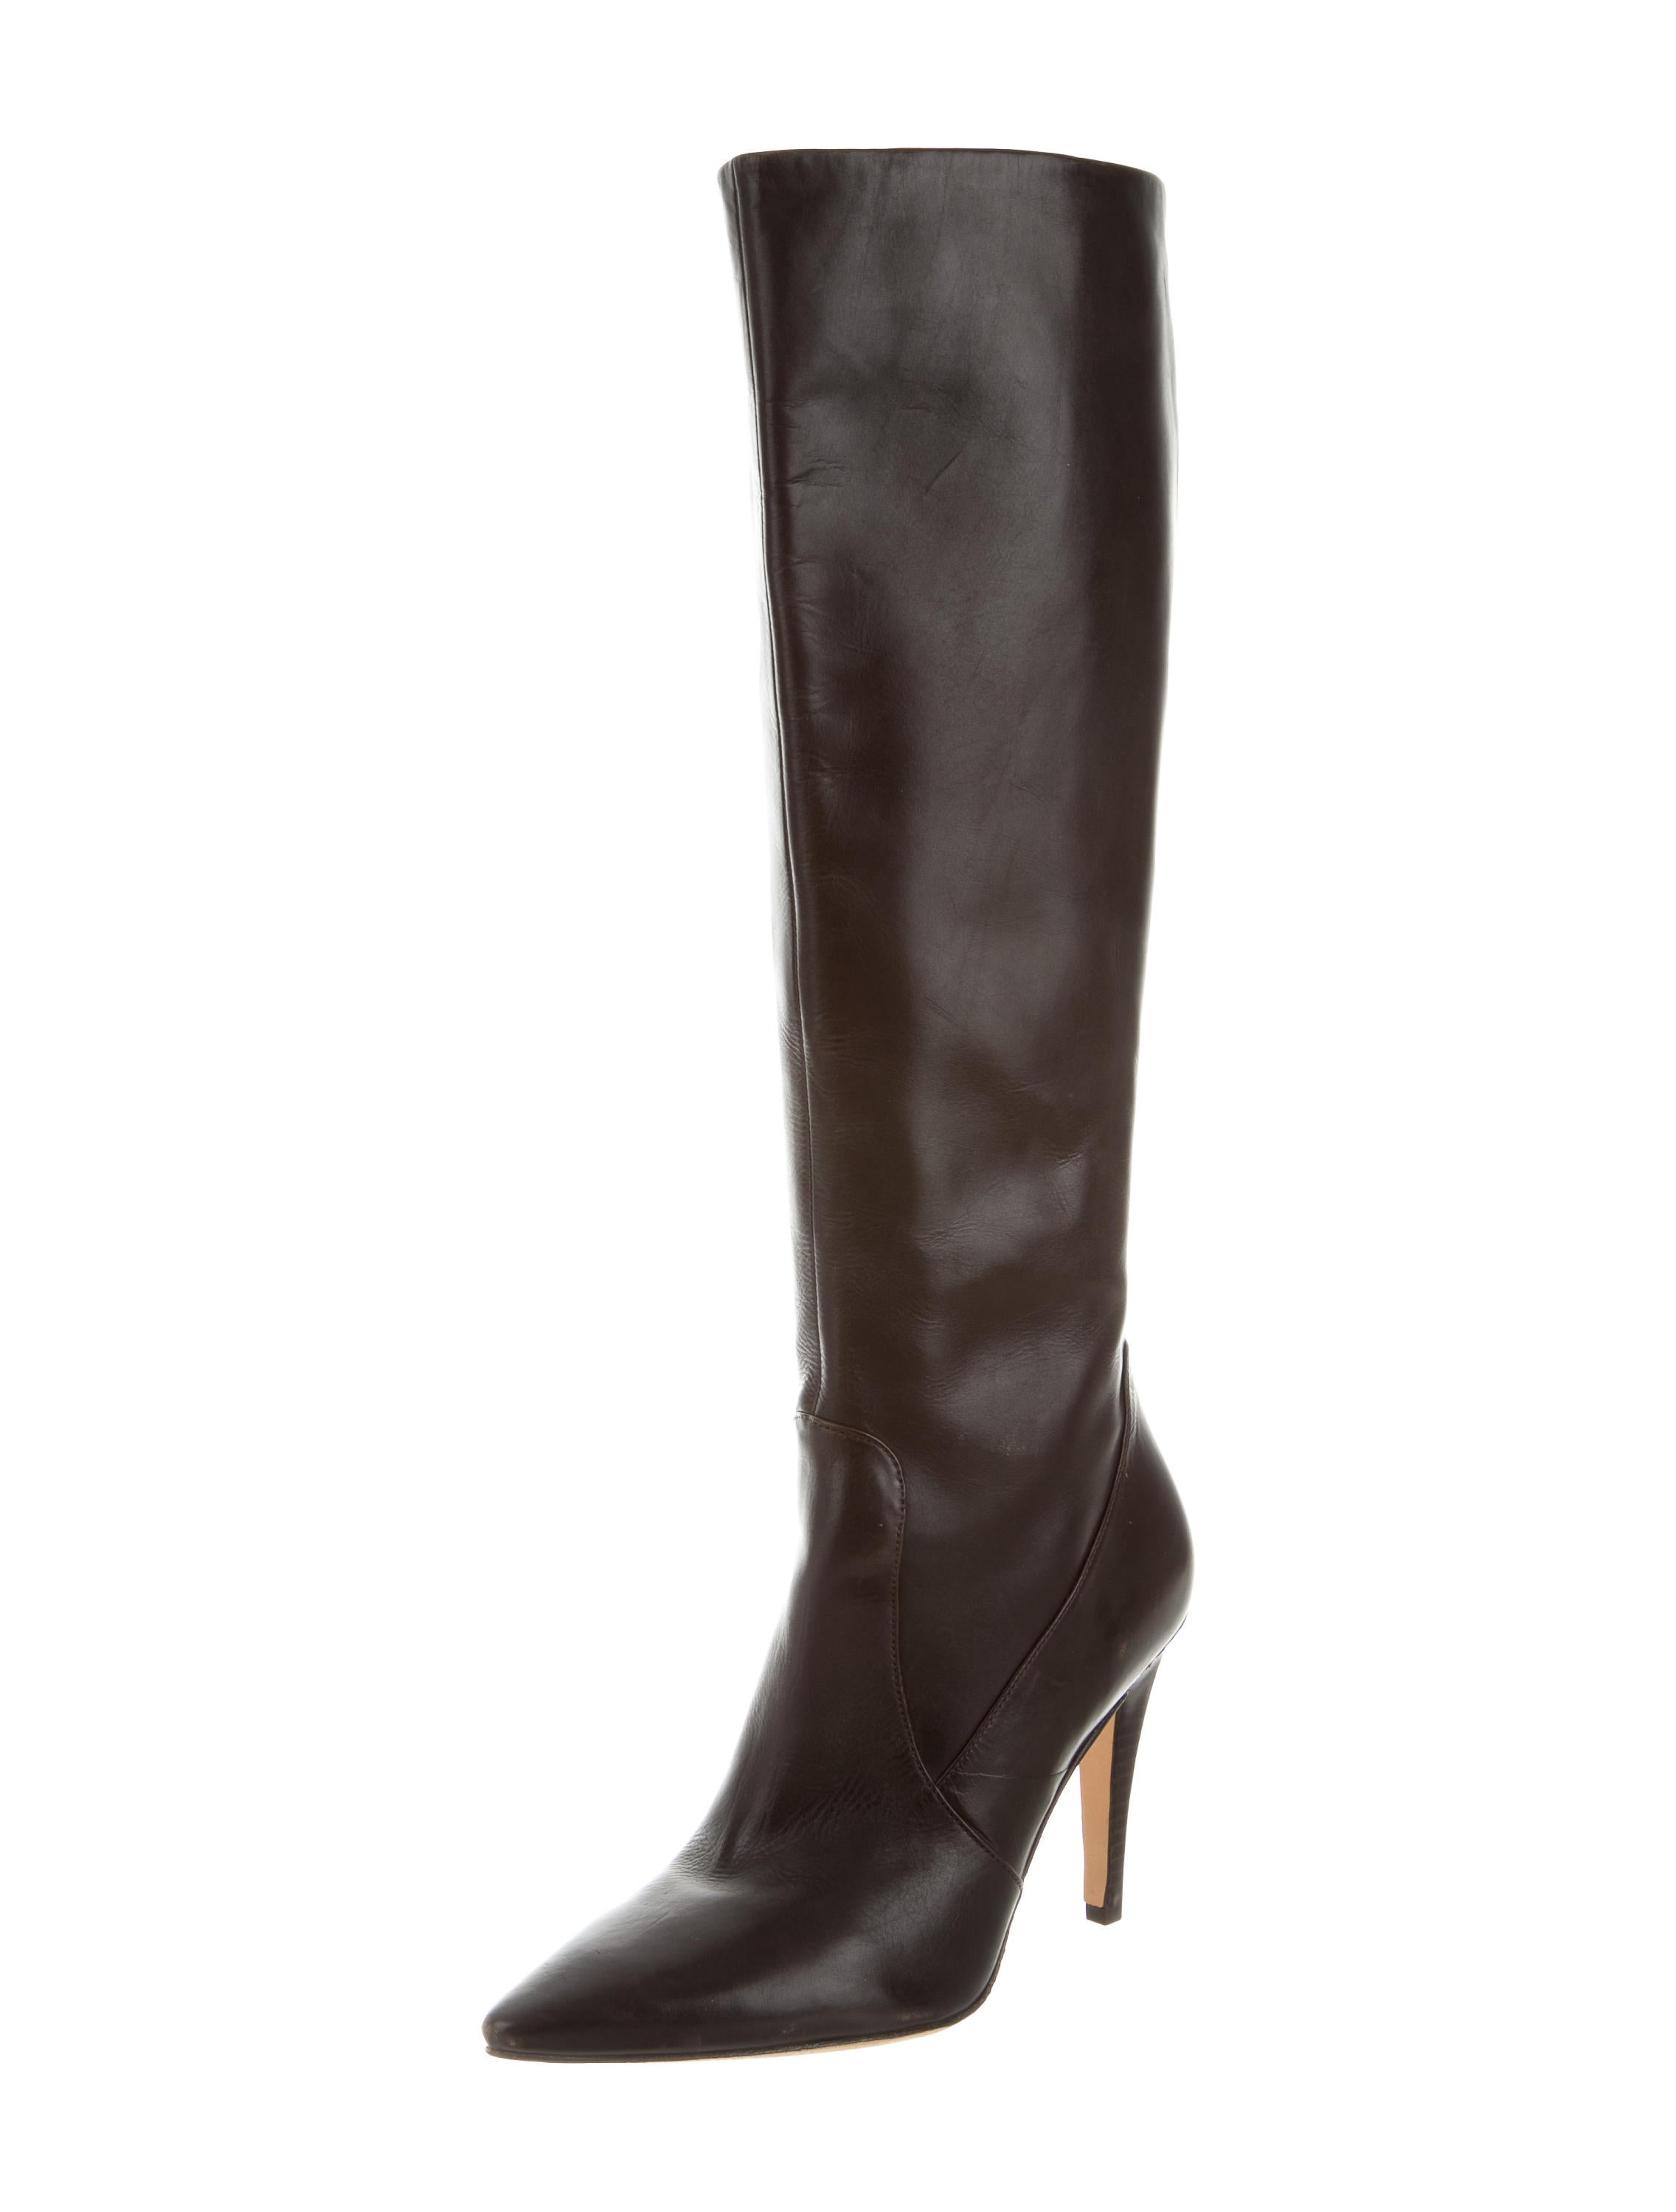 Via Spiga Leather Knee High Boots Shoes Wv020020 The